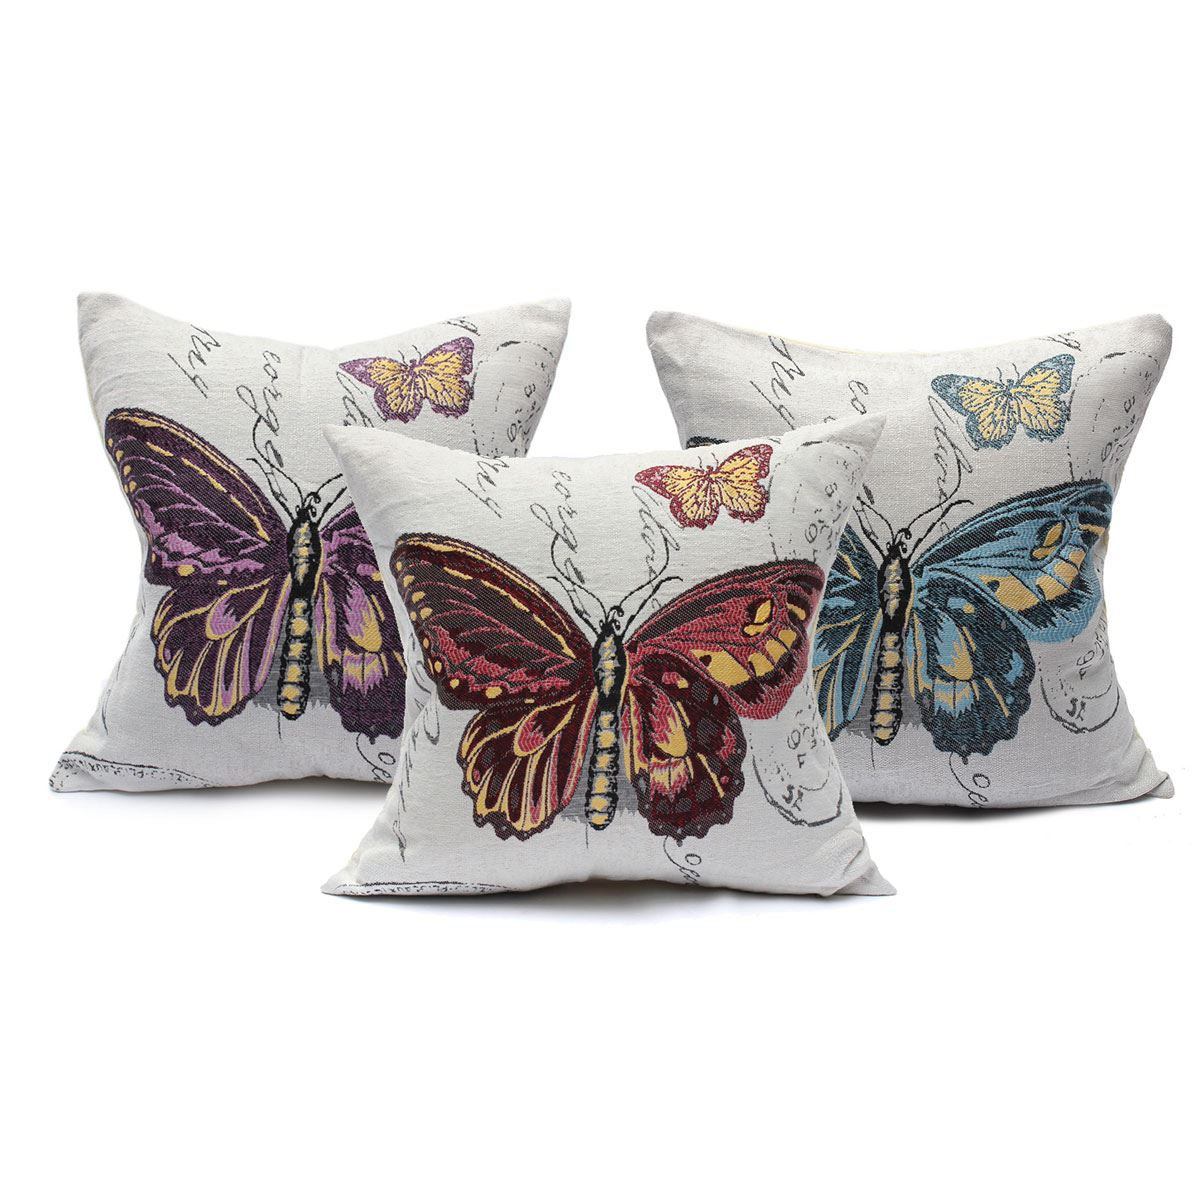 Popular Vintage Embroidery Brio Butterfly Square Cotton Linen Throw Pillow Case Sofa Cushion Cover Universal Car Home Decor Gift(China (Mainland))